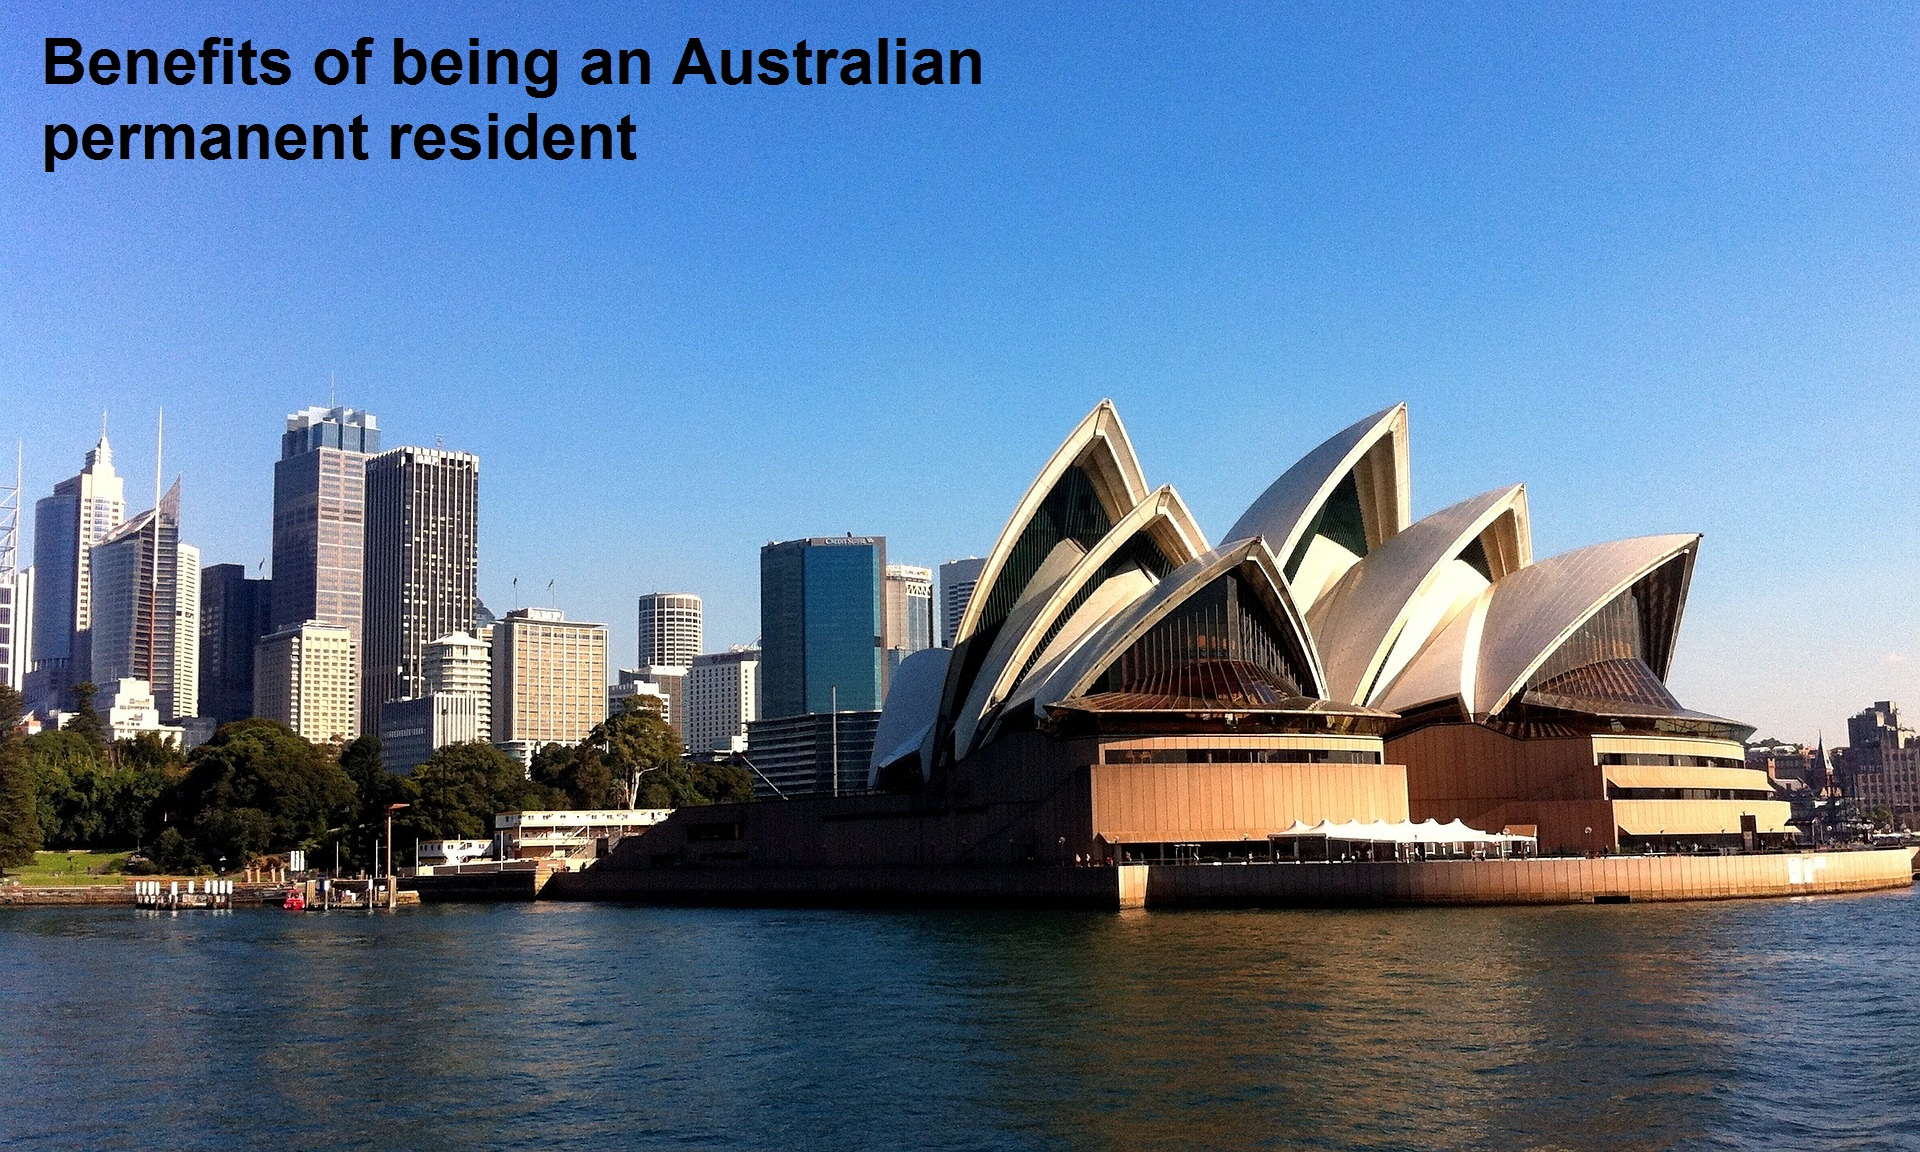 Benefits of being an Australian permanent resident